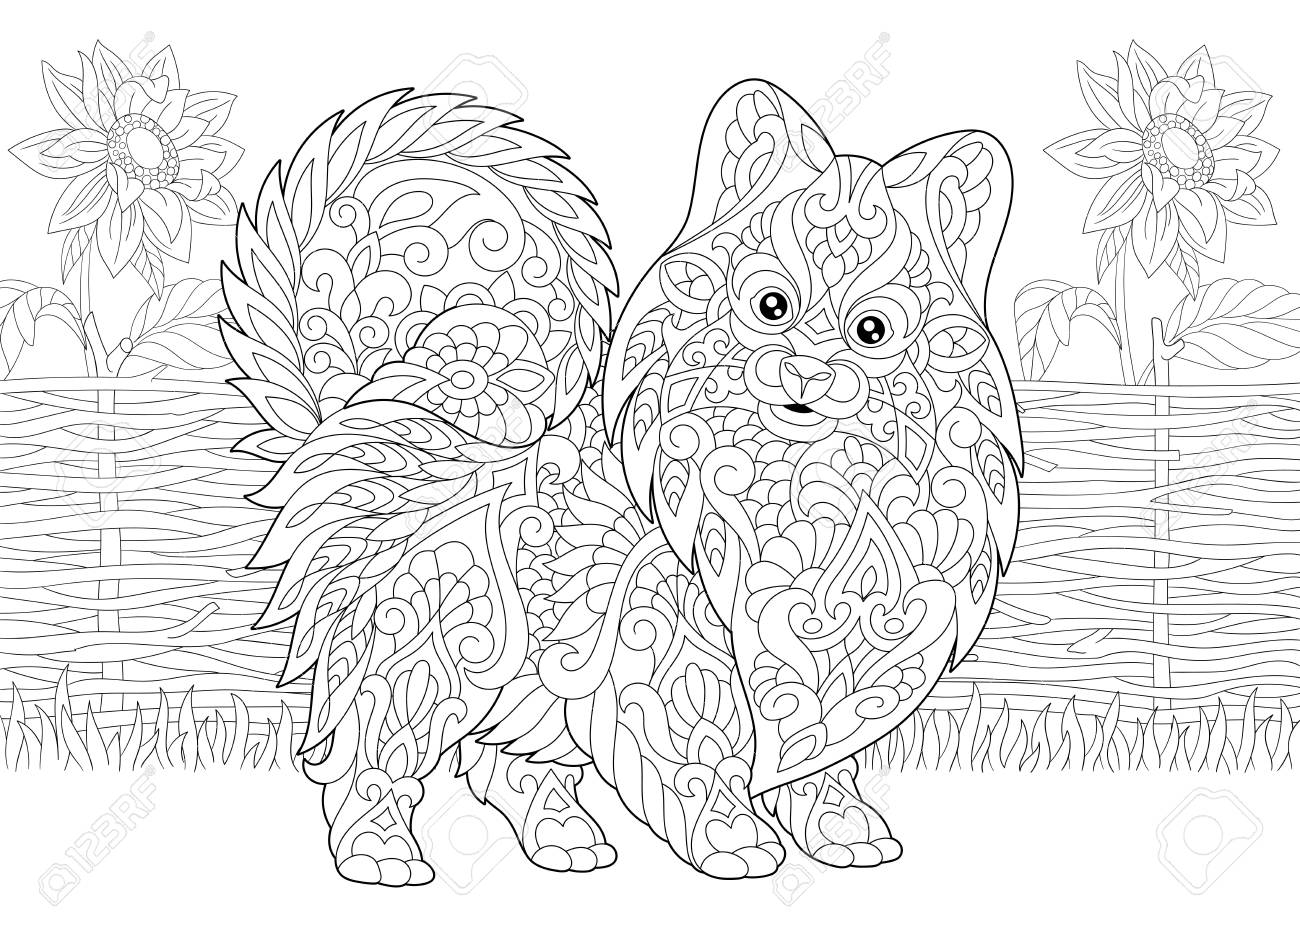 Coloring Page. Adult Coloring Book. Pomeranian Spitz, Dog Symbol ...